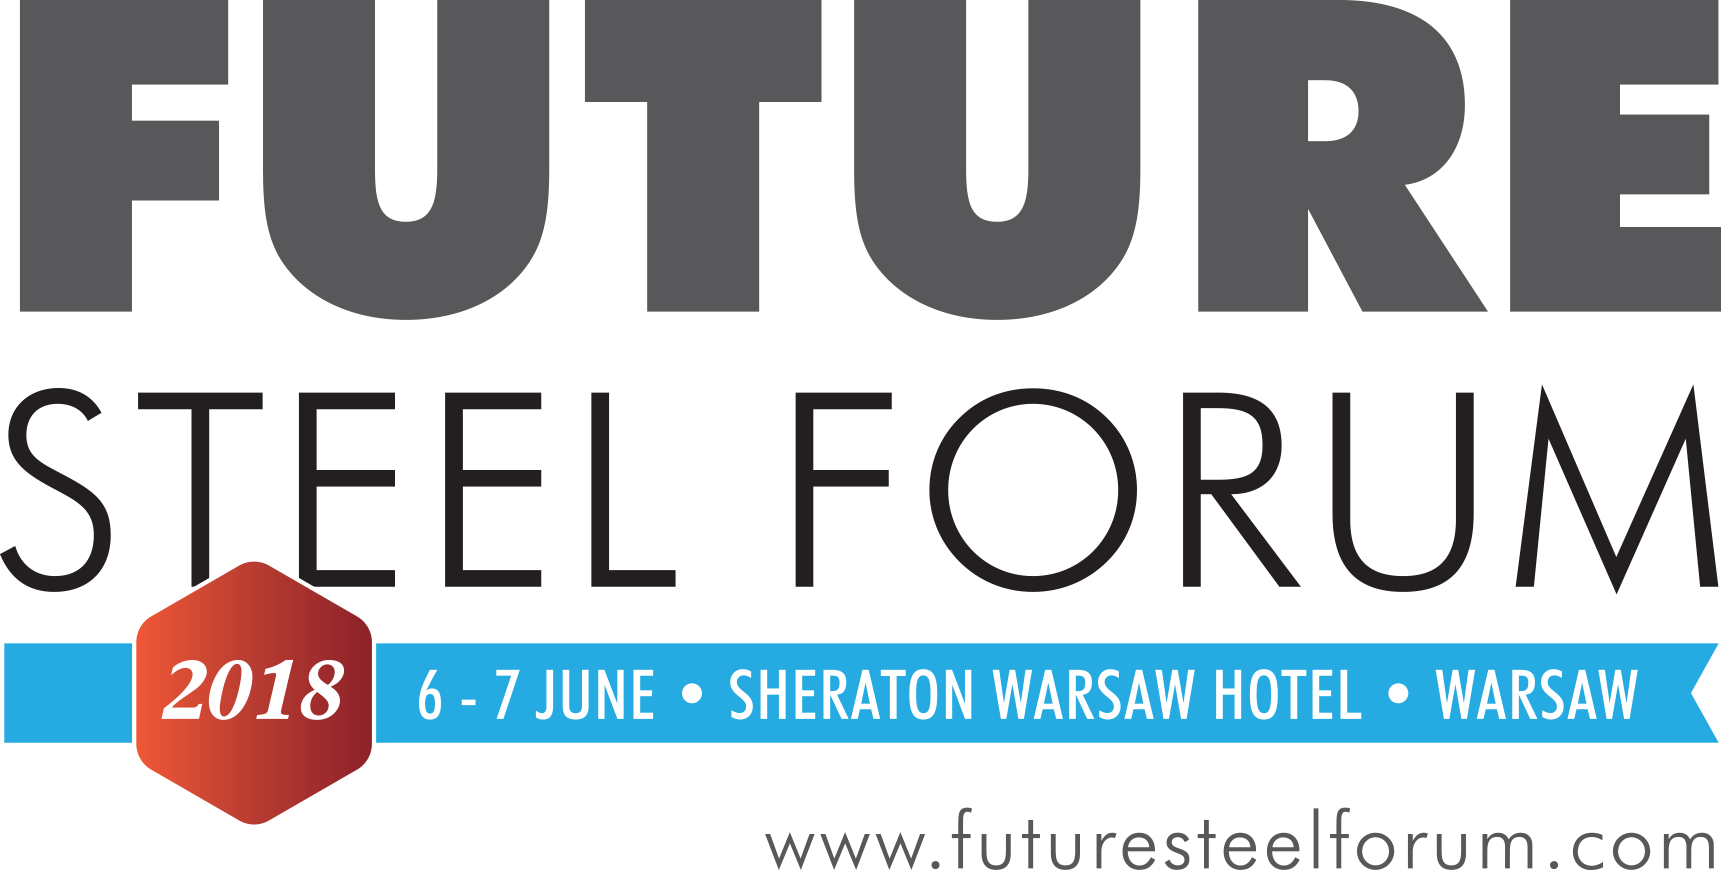 Future_Steel_Forum2018_LogoOL.png#asset:25063